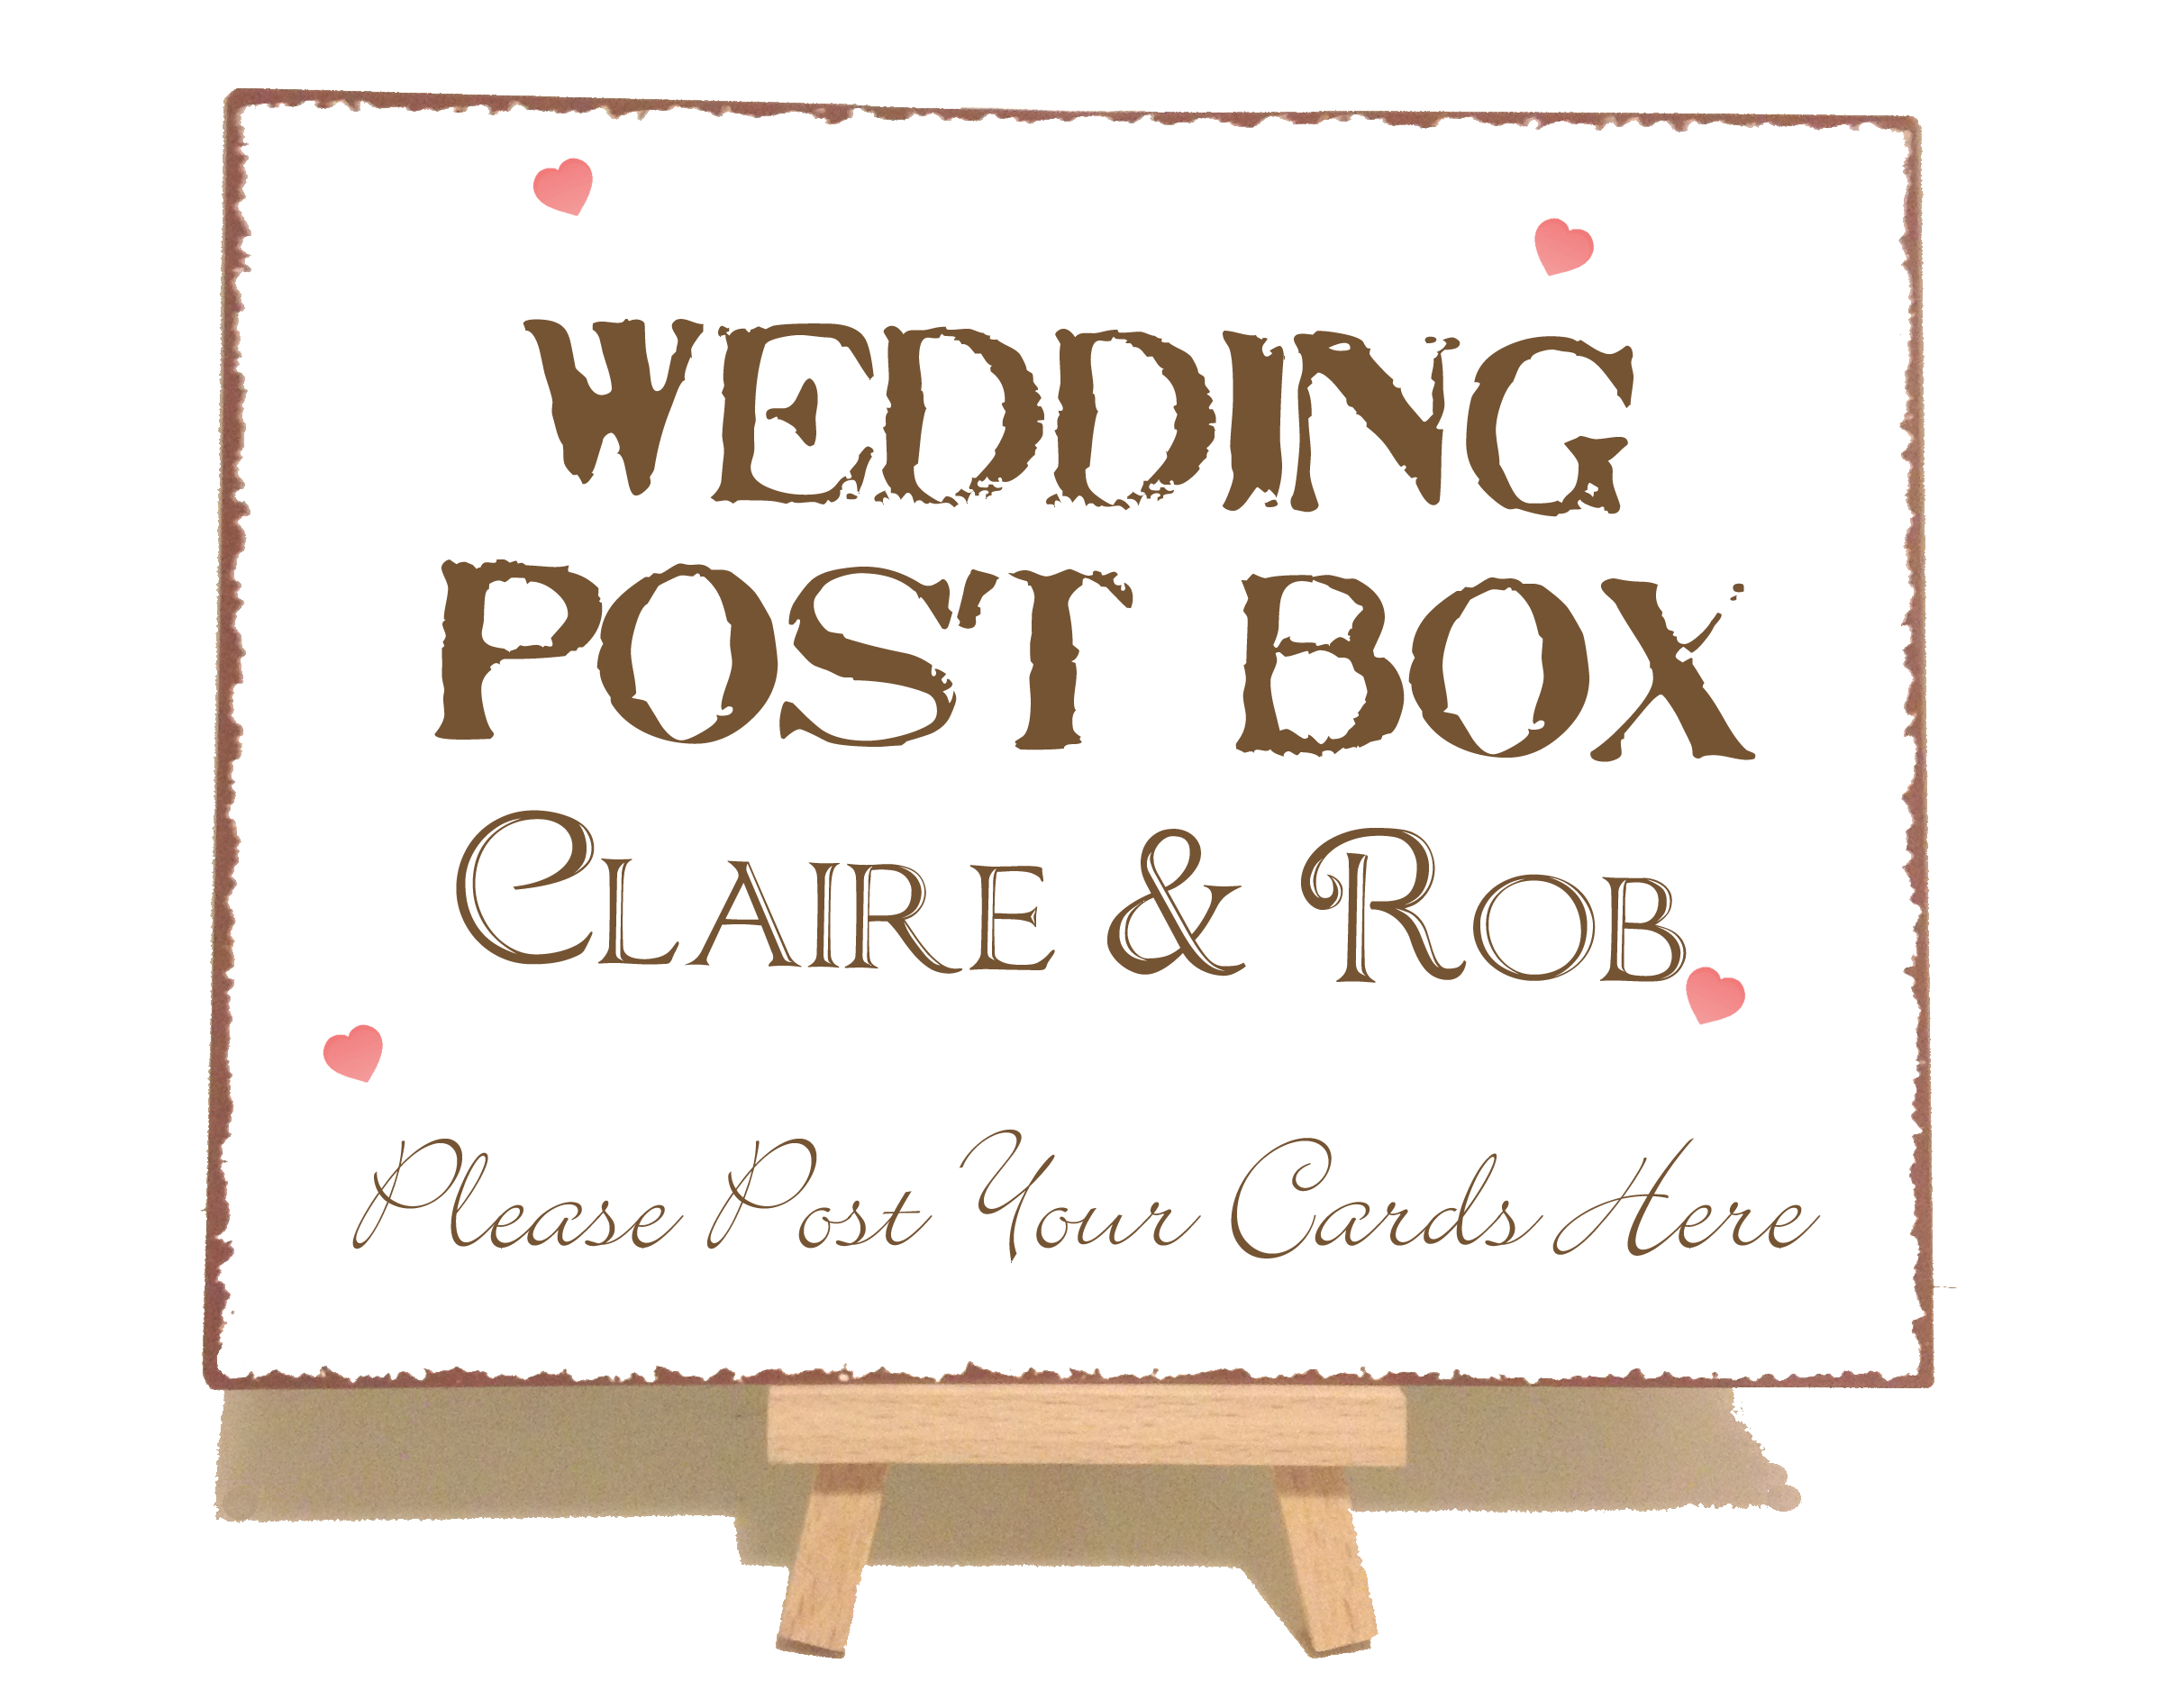 Personalised Wedding Post Box Vintage Shabby Chic Style Metal Sign